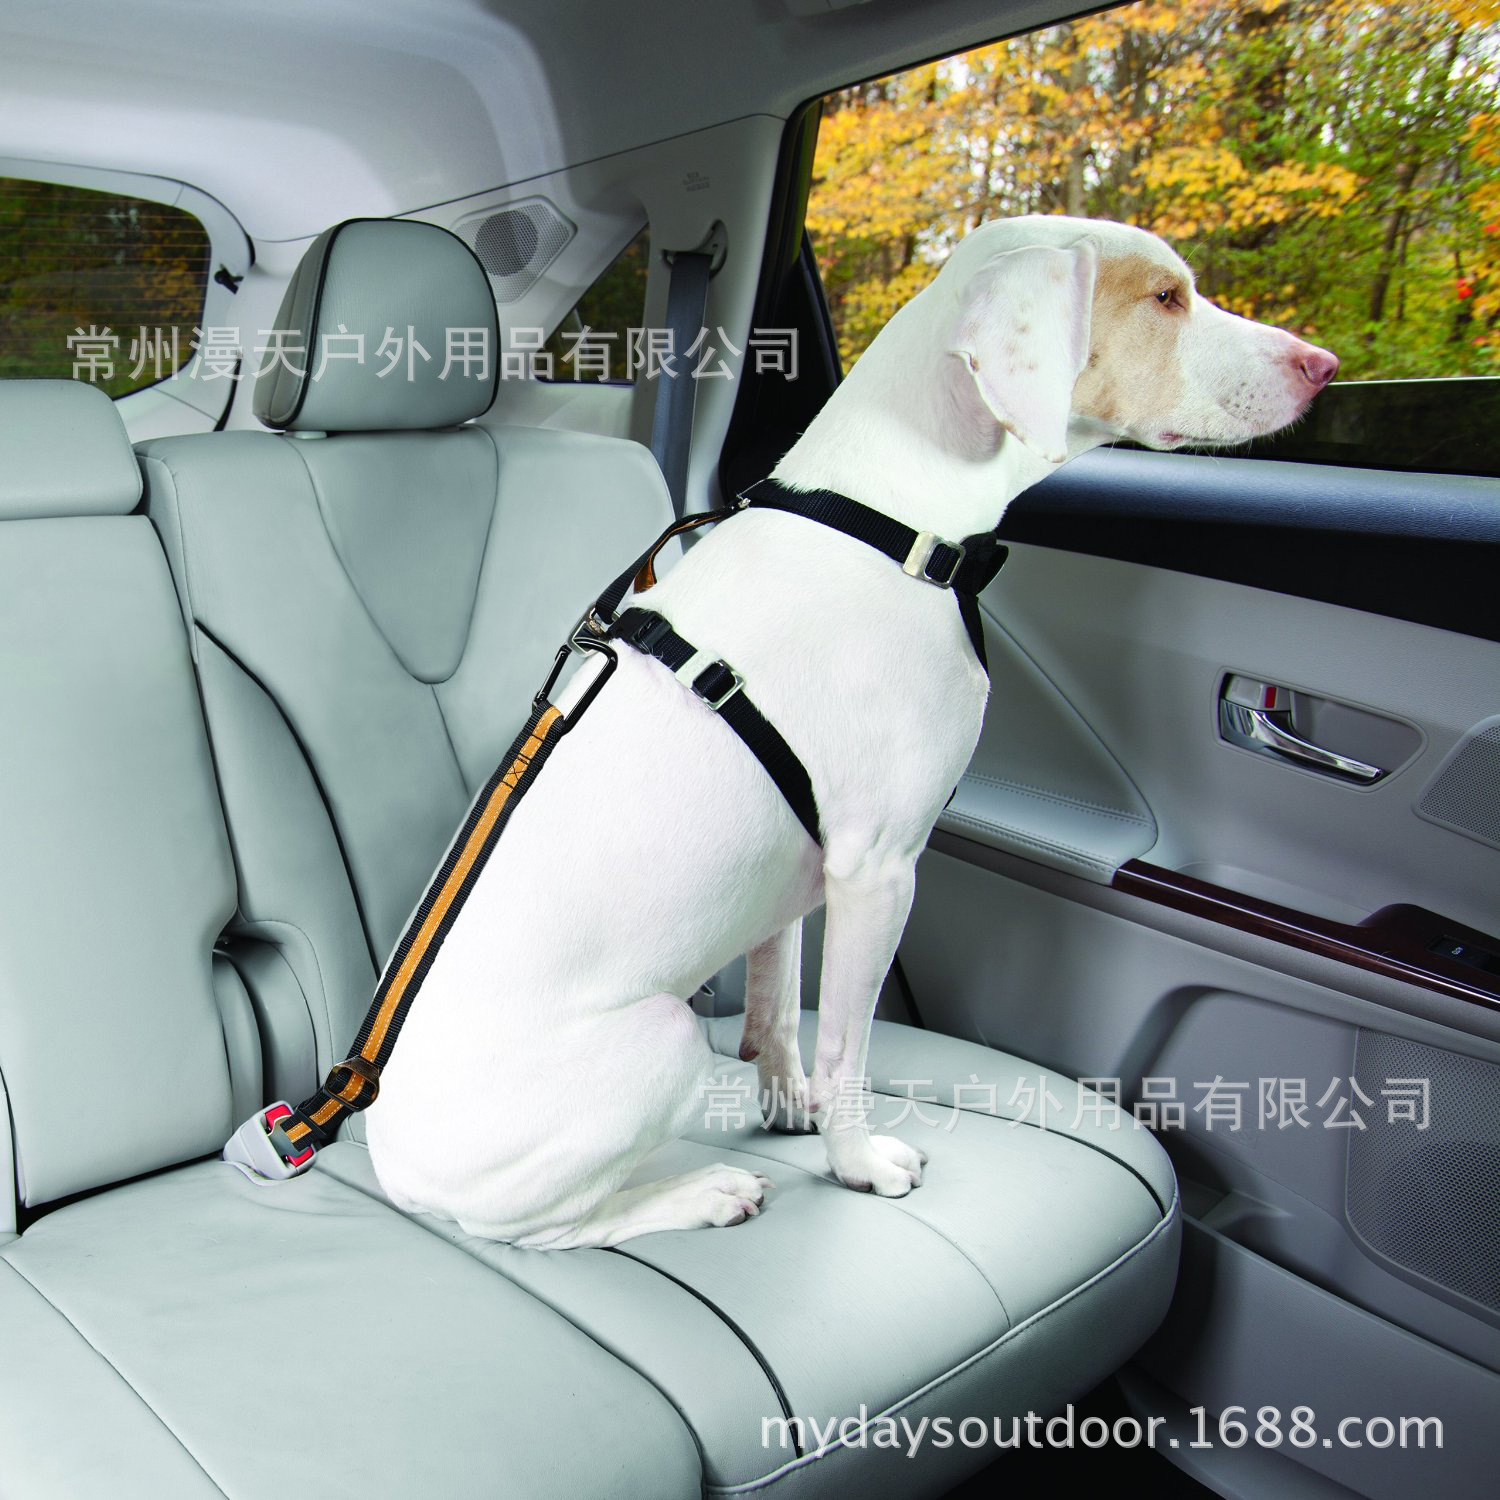 Sky Outdoor Pet Traction Rope Dog Training Rope Wear-Resistant Automobile Safety Belt Dog Leash Export